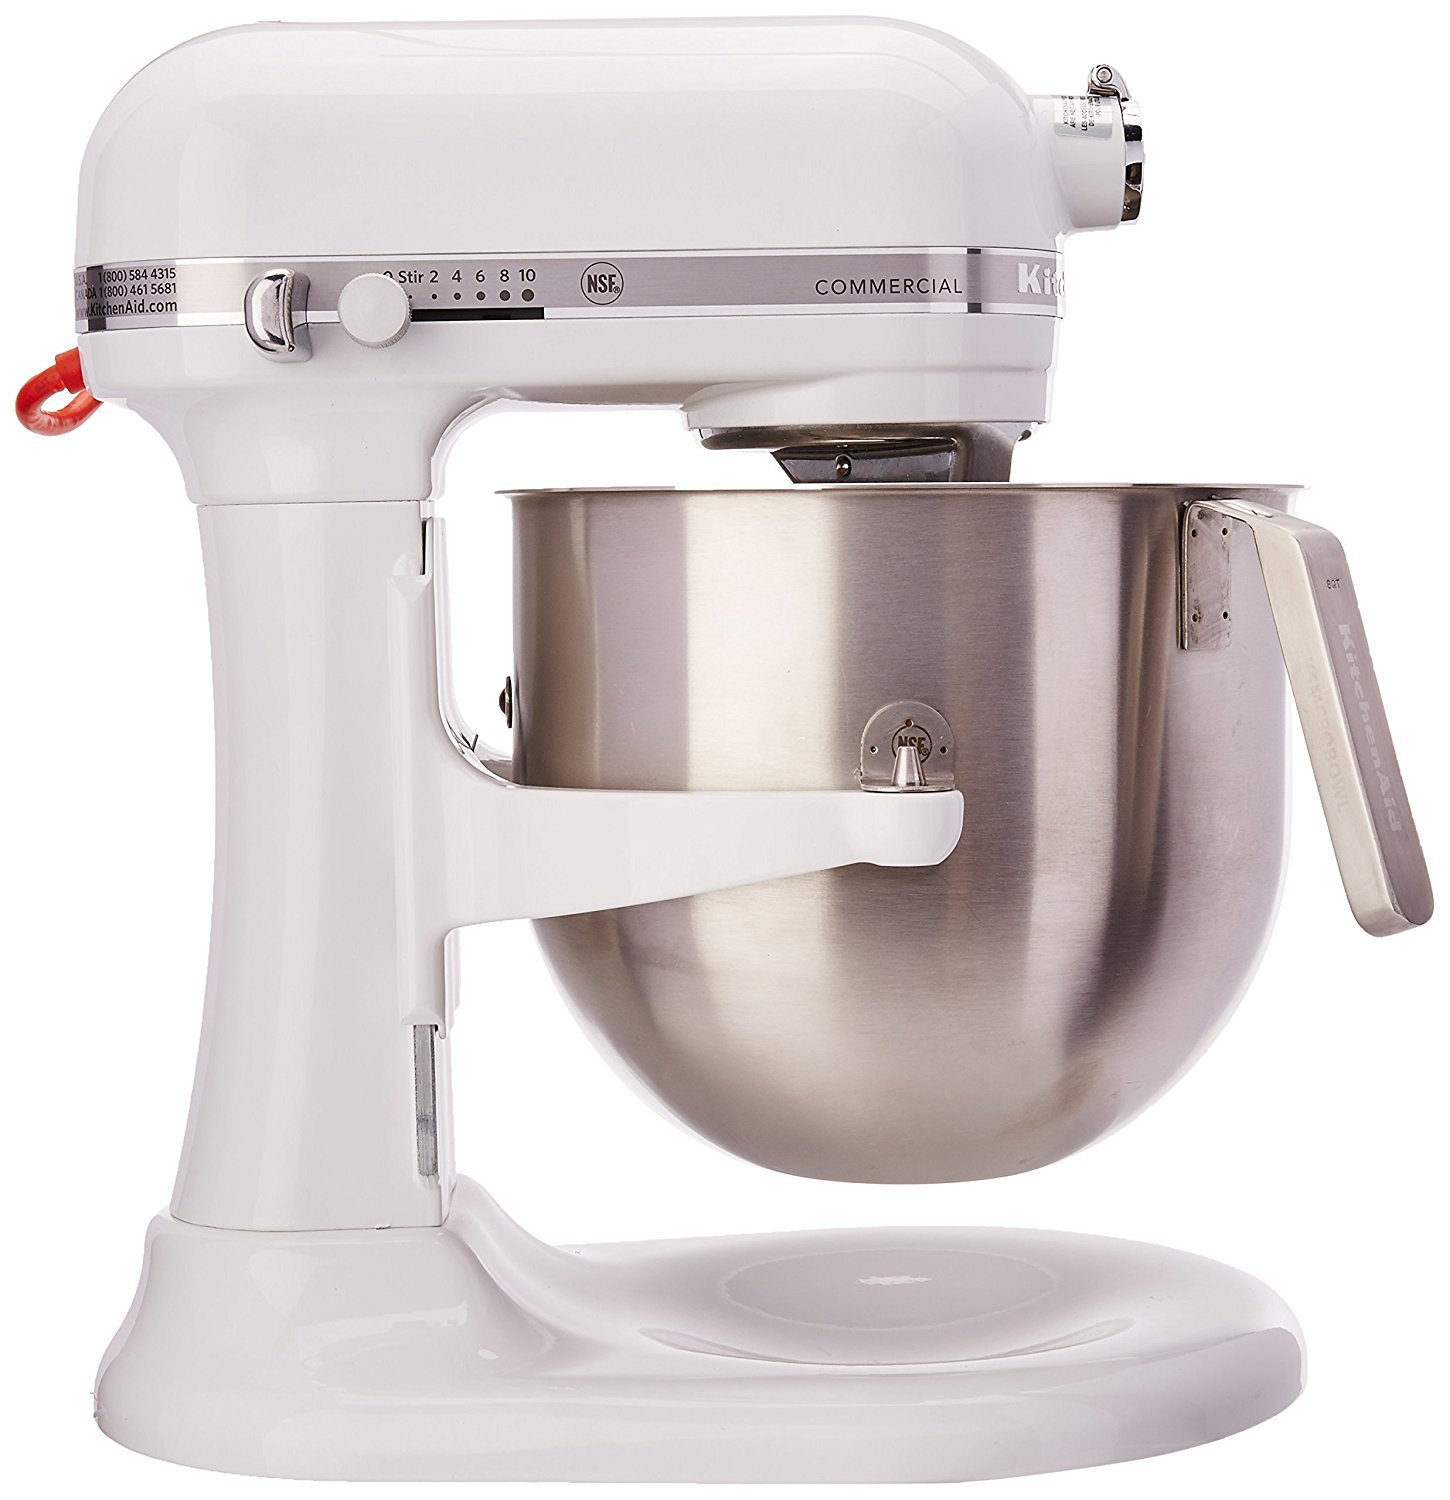 KitchenAid RKSM8990WH 8-Quart Refurbished Commercial Countertop Mixer, 10-Speed, Gear-Driven, White